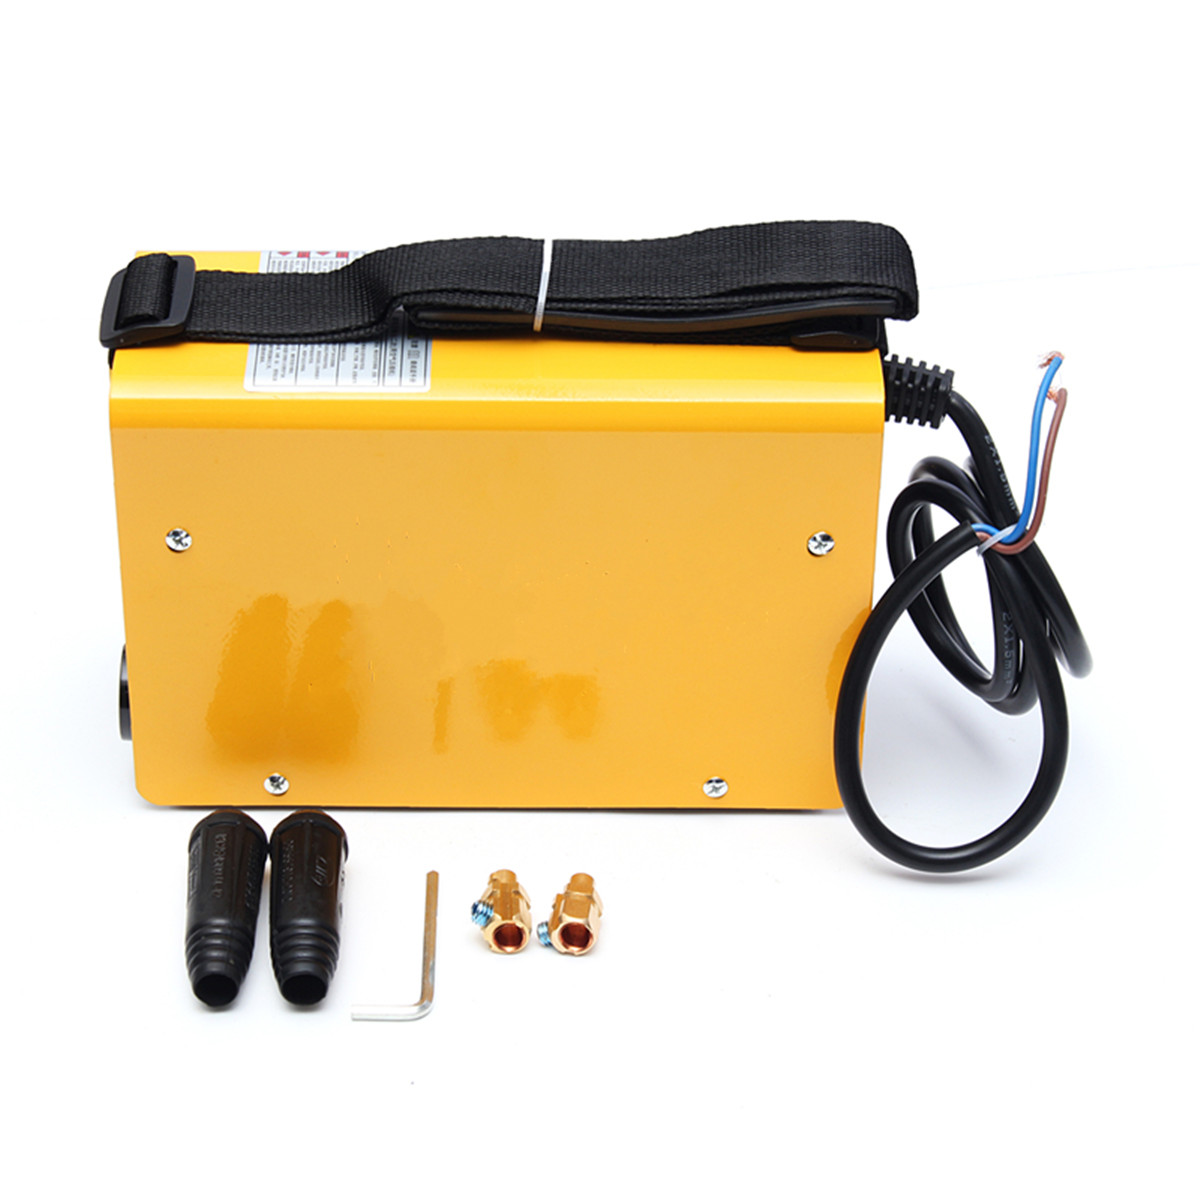 ZX7-200 Mini Electric Welding Machine Portable Solder 220V 40W 10-200A IGBT Inverter Air Cooling Soldering Tool Welding WorkingZX7-200 Mini Electric Welding Machine Portable Solder 220V 40W 10-200A IGBT Inverter Air Cooling Soldering Tool Welding Working